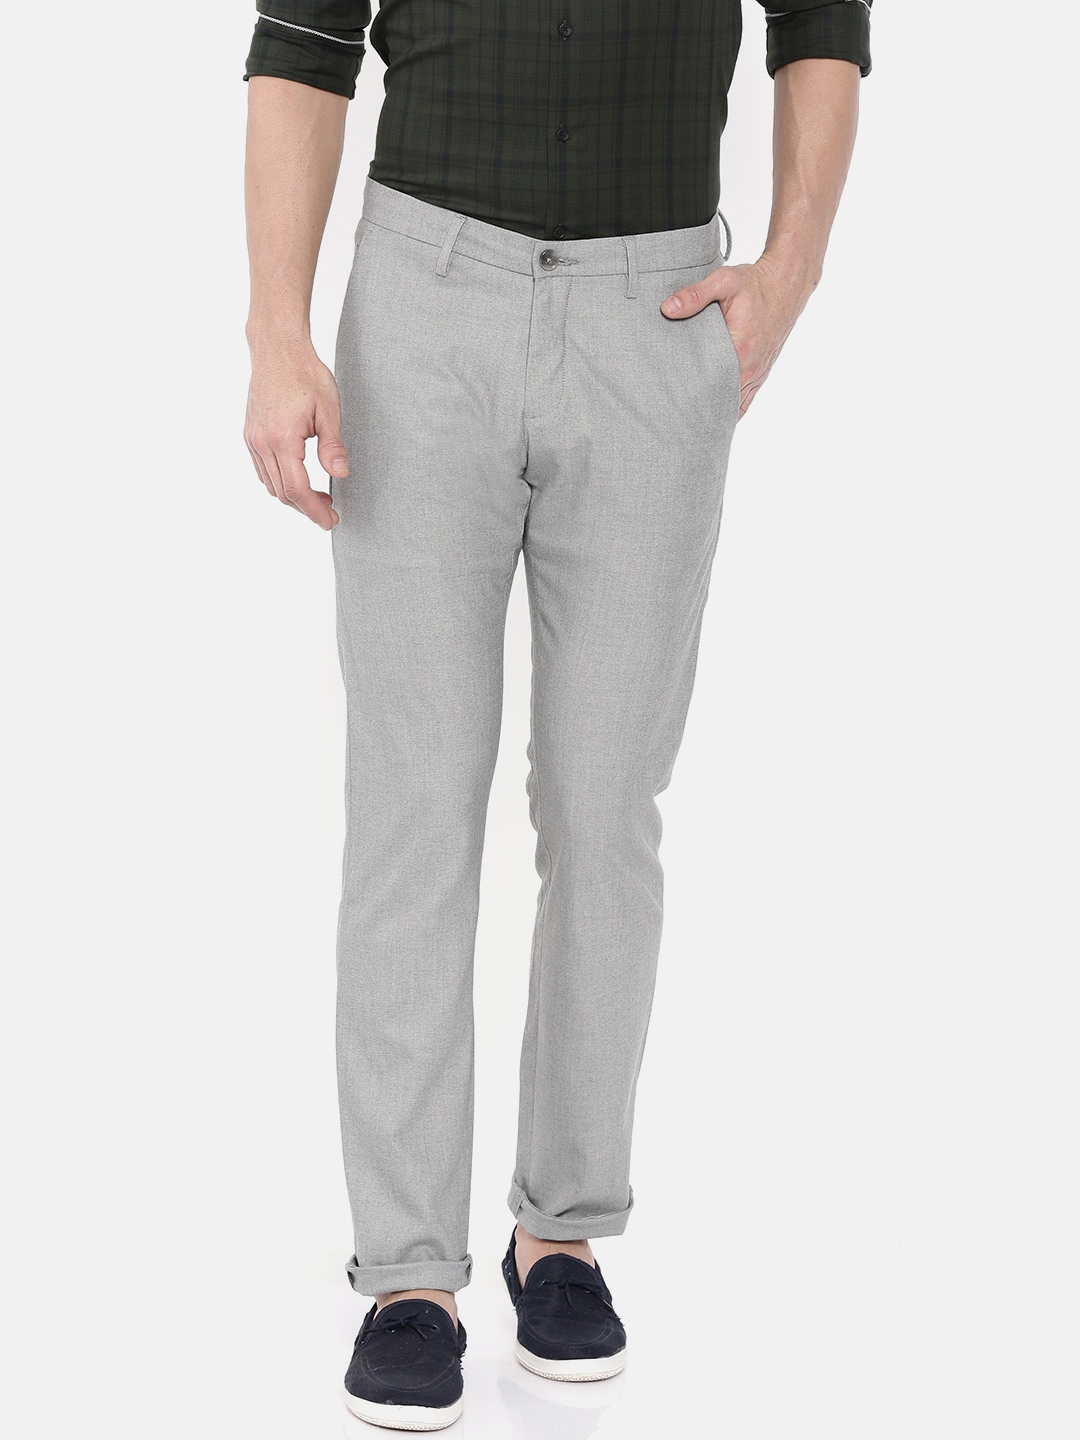 d3cf18e6836 Allen Solly Trousers - Buy Allen Solly Trousers   Pants Online